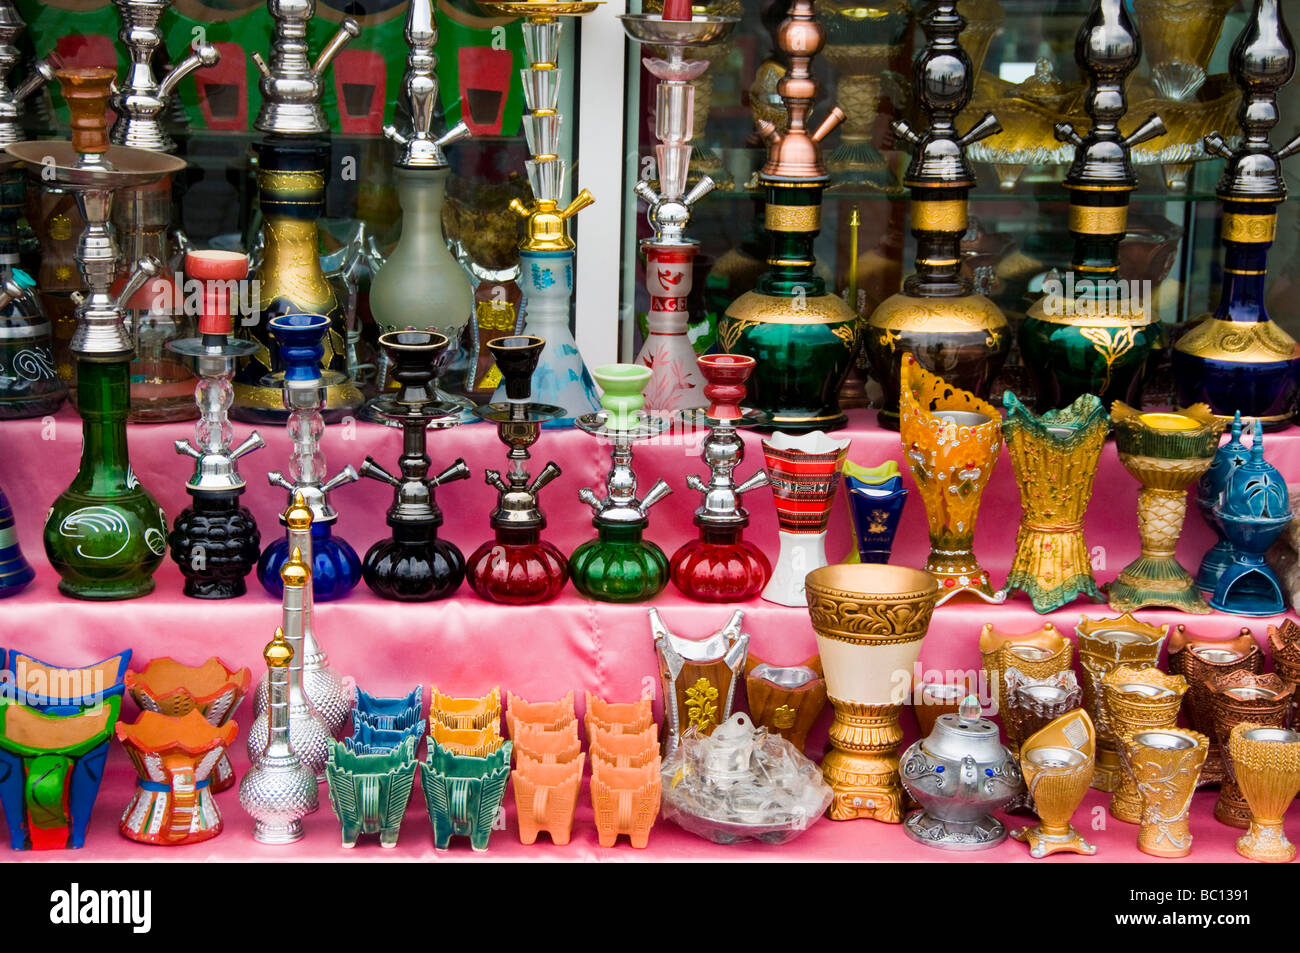 Traditional Handicrafts On Display In Stores Mutrah Souk Muscat Oman